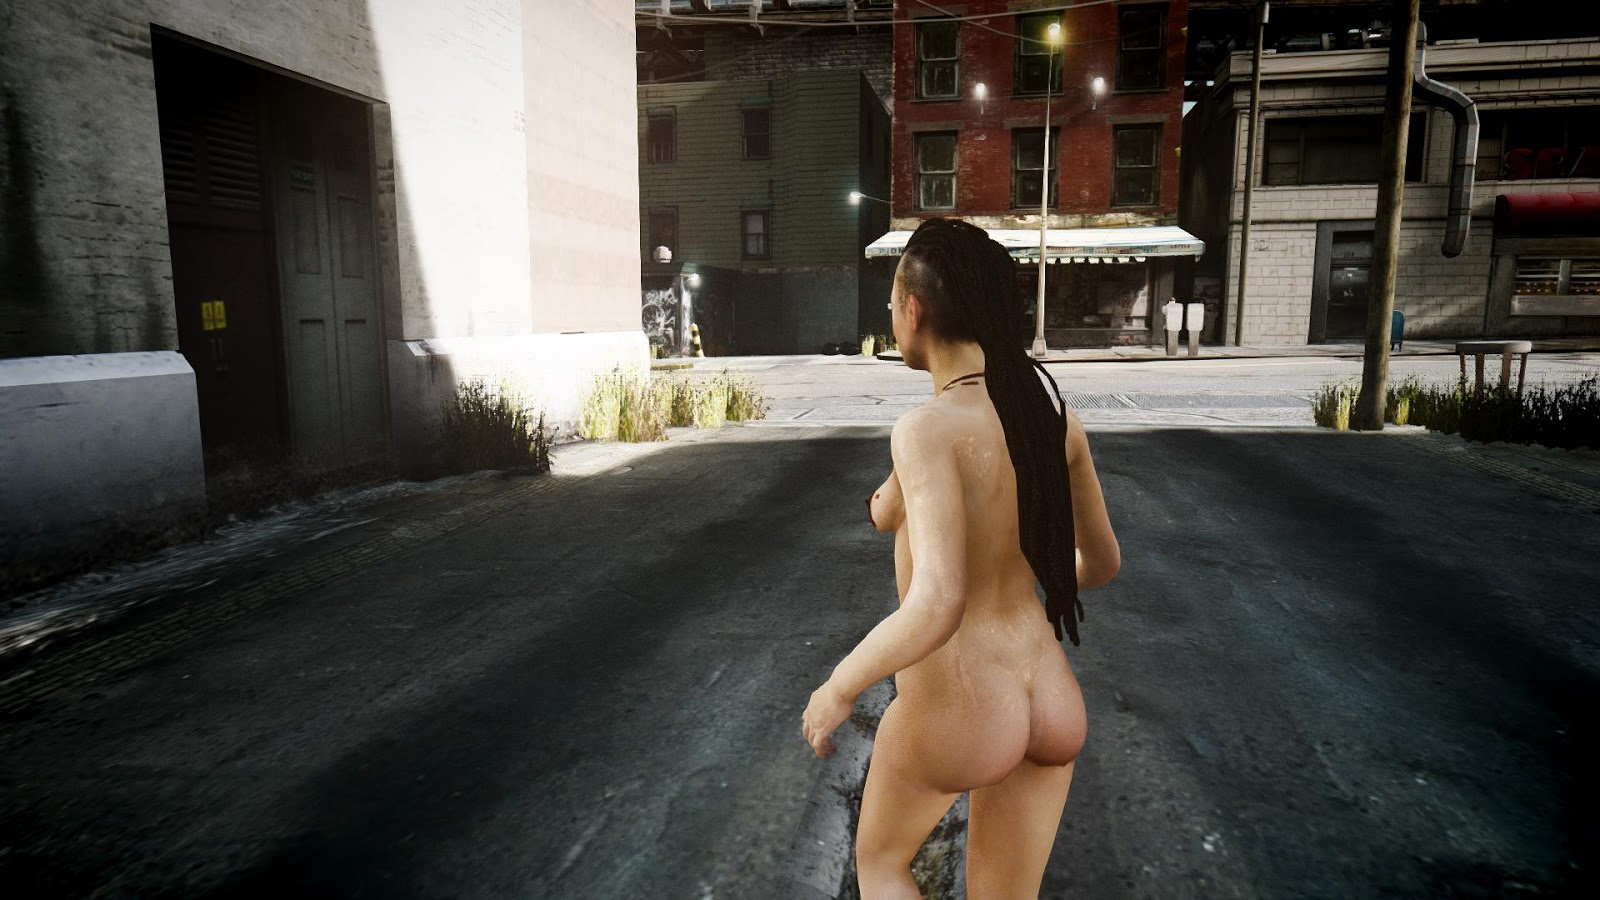 Gta 4 nud naked exploited photo